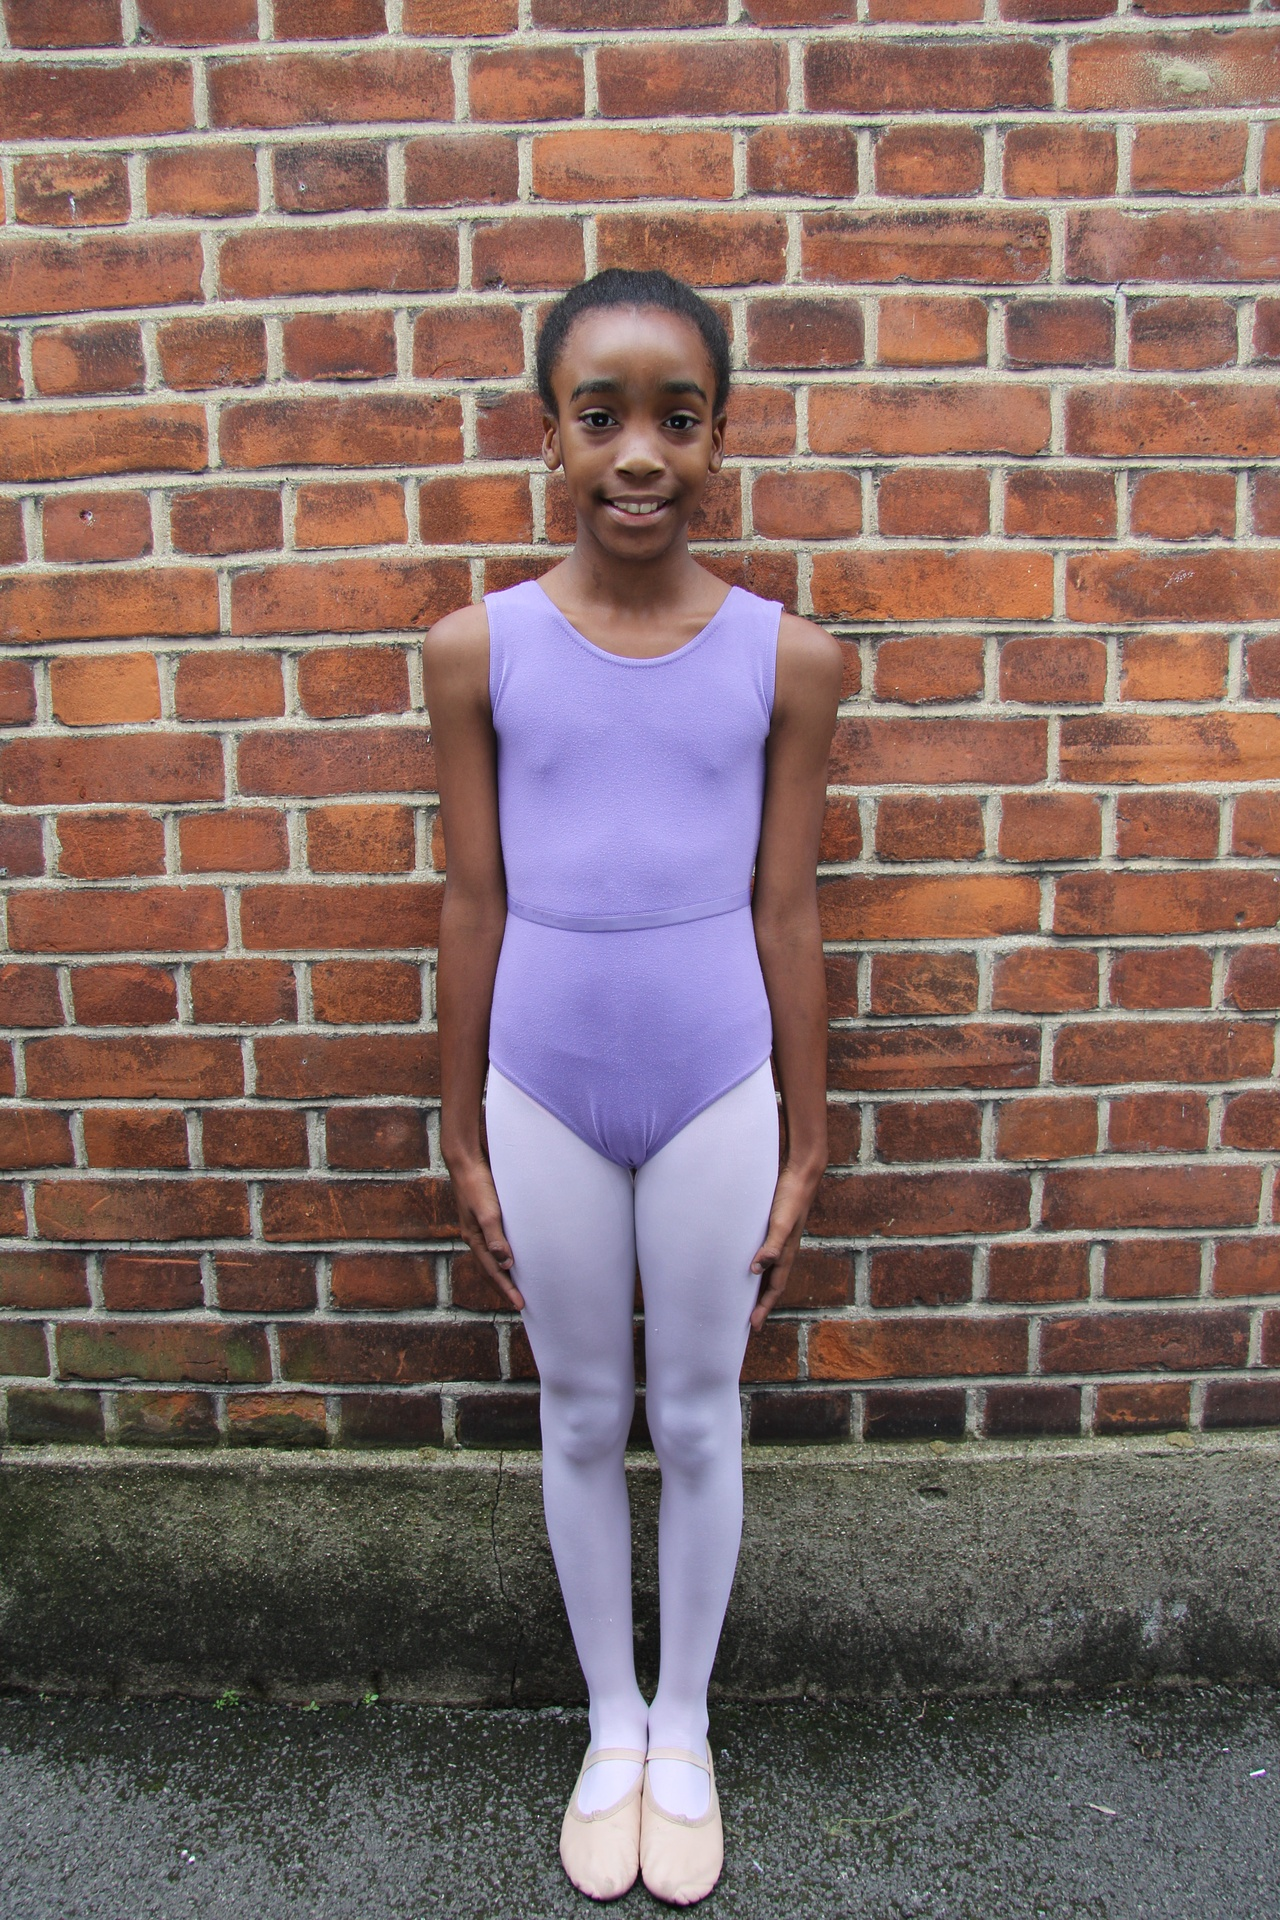 Grade 1 and 2 classical uniform for girls